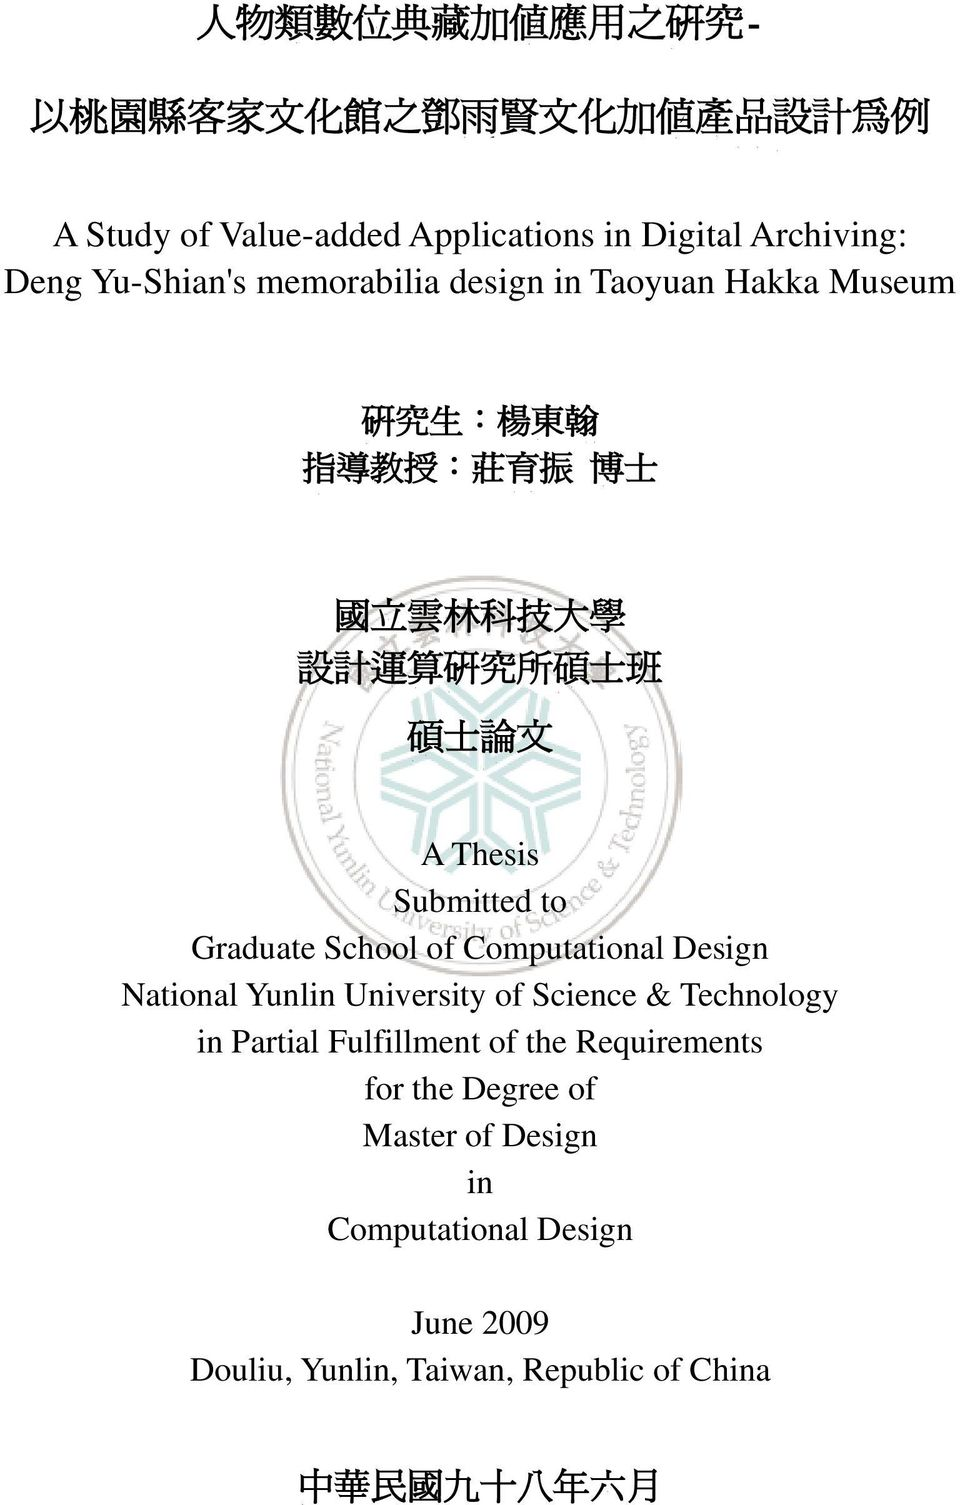 Thesis Submitted to Graduate School of Computational Design National Yunlin University of Science & Technology in Partial Fulfillment of